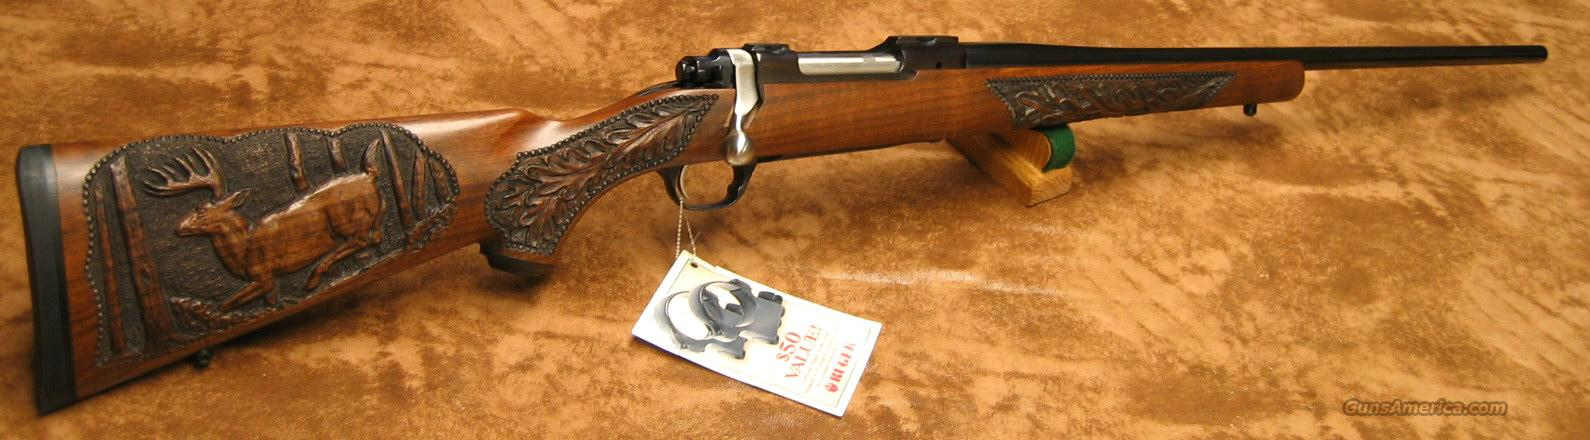 CUSTOM CARVED NEW RUGER M77R MKII 7MM REM SA ULTRA MAG   New In Box  Guns > Rifles > Ruger Rifles > Model 77